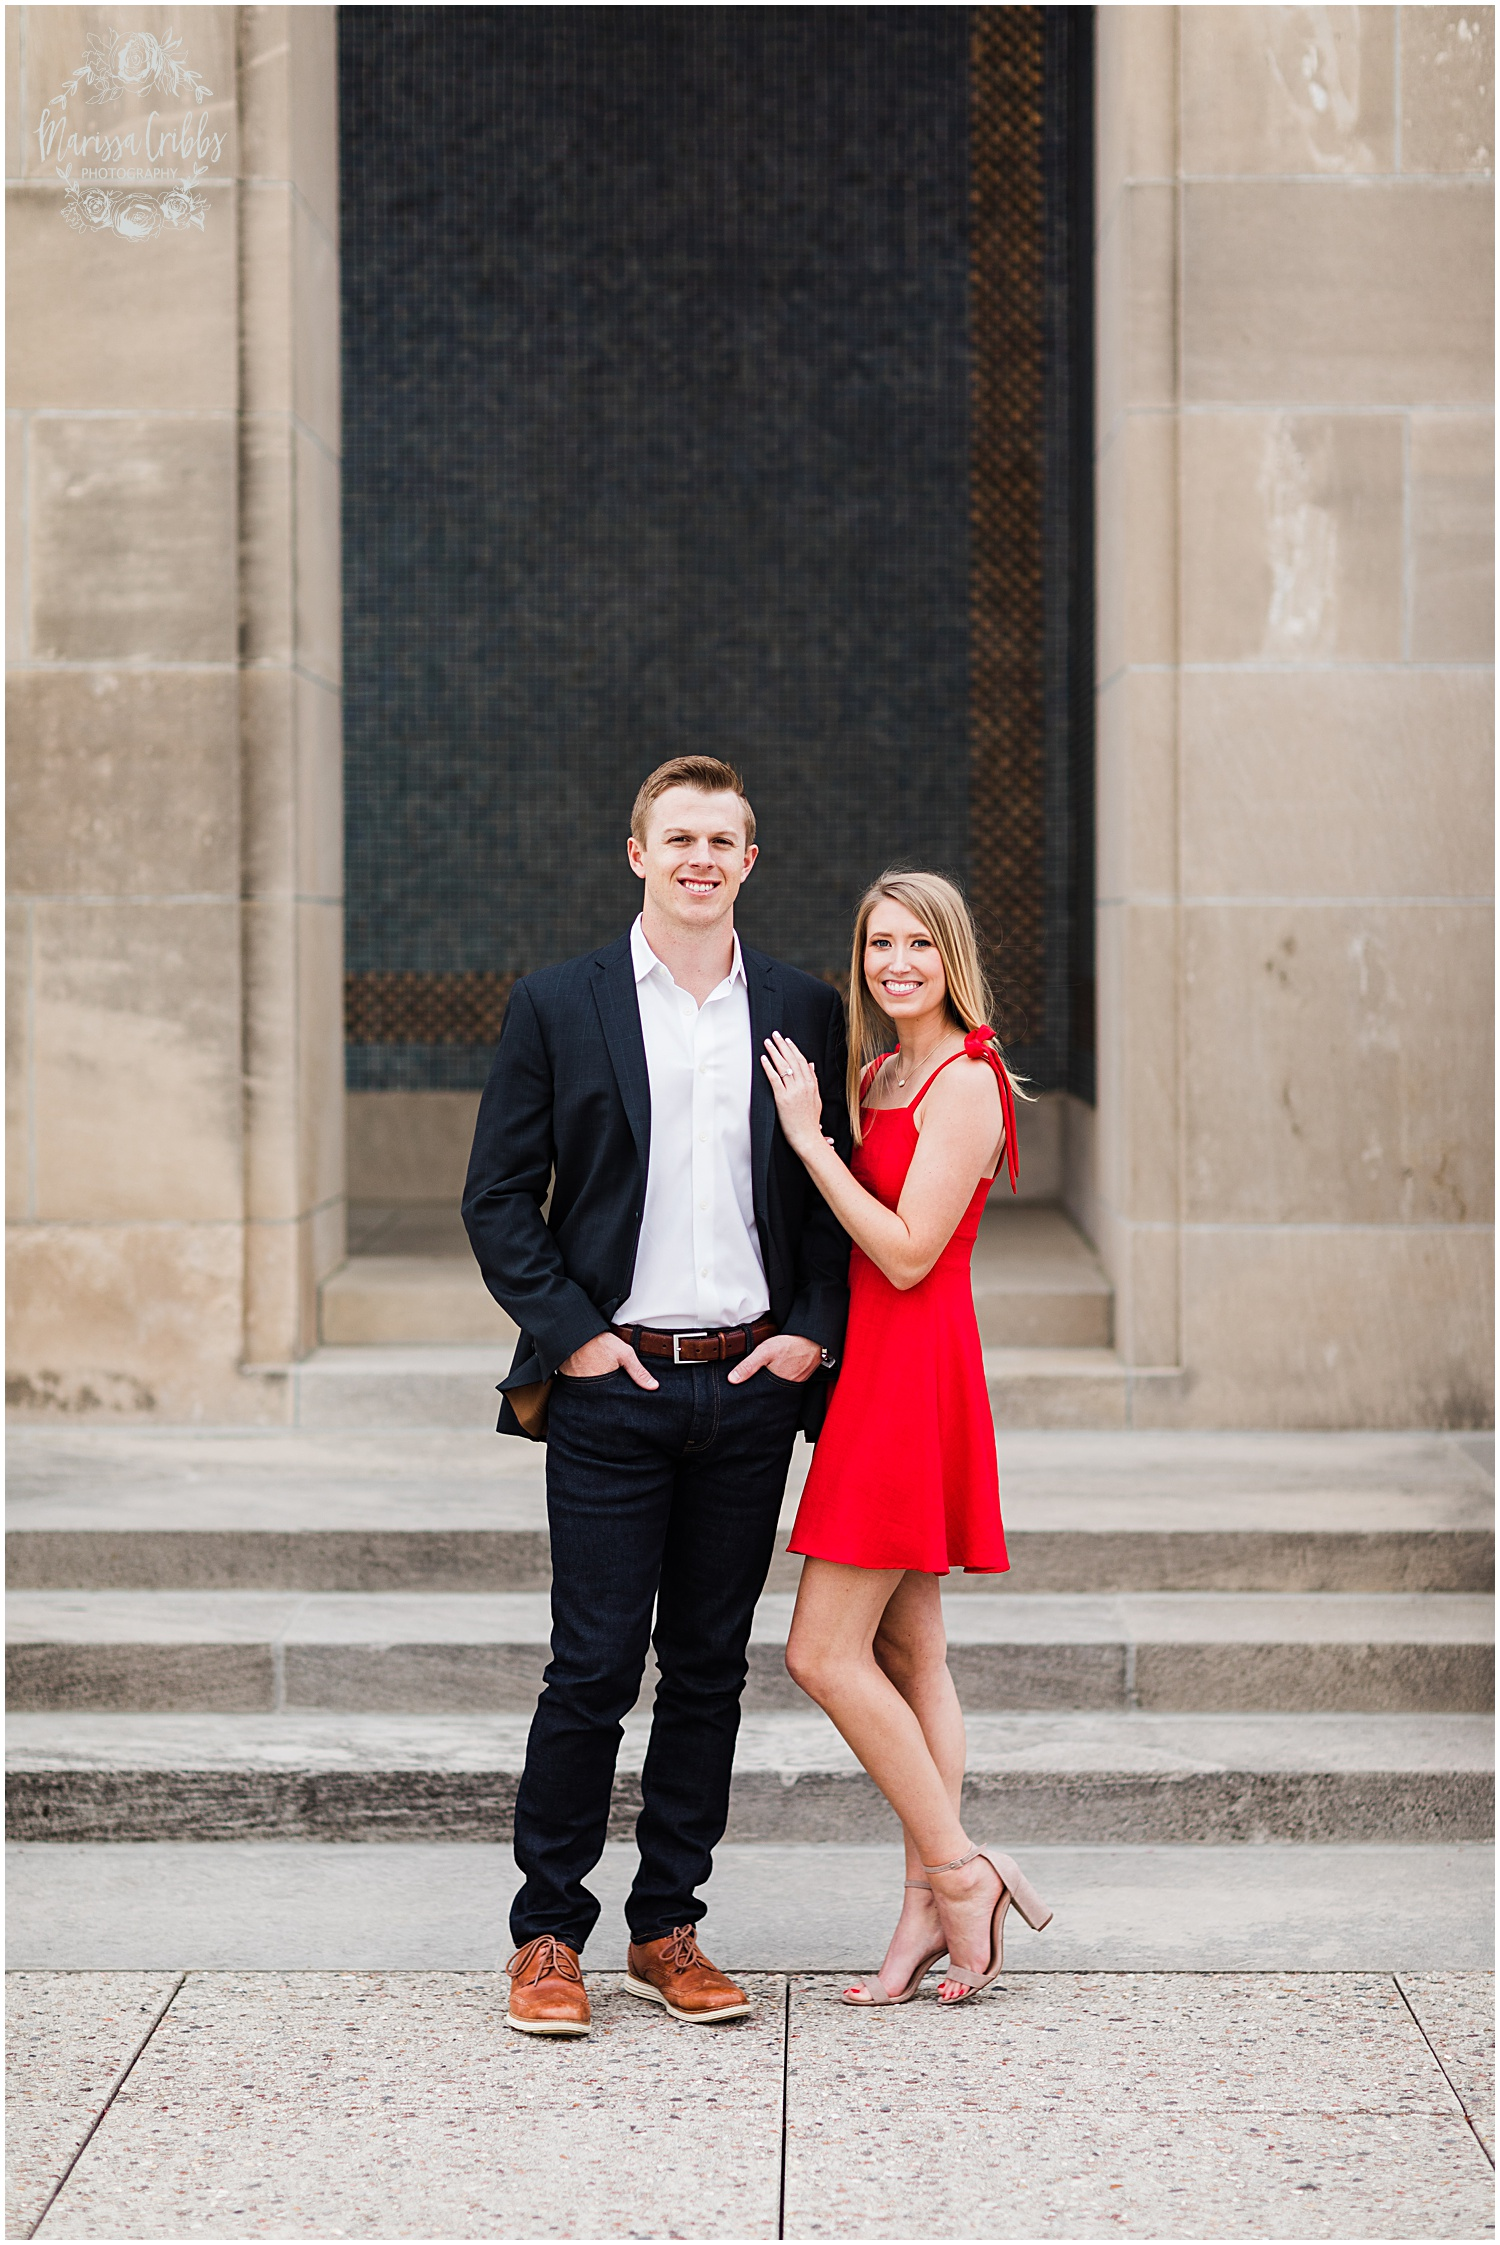 MADDY & KYLE ENGAGEMENT | MARISSA CRIBBS PHOTOGRAPHY_7628.jpg